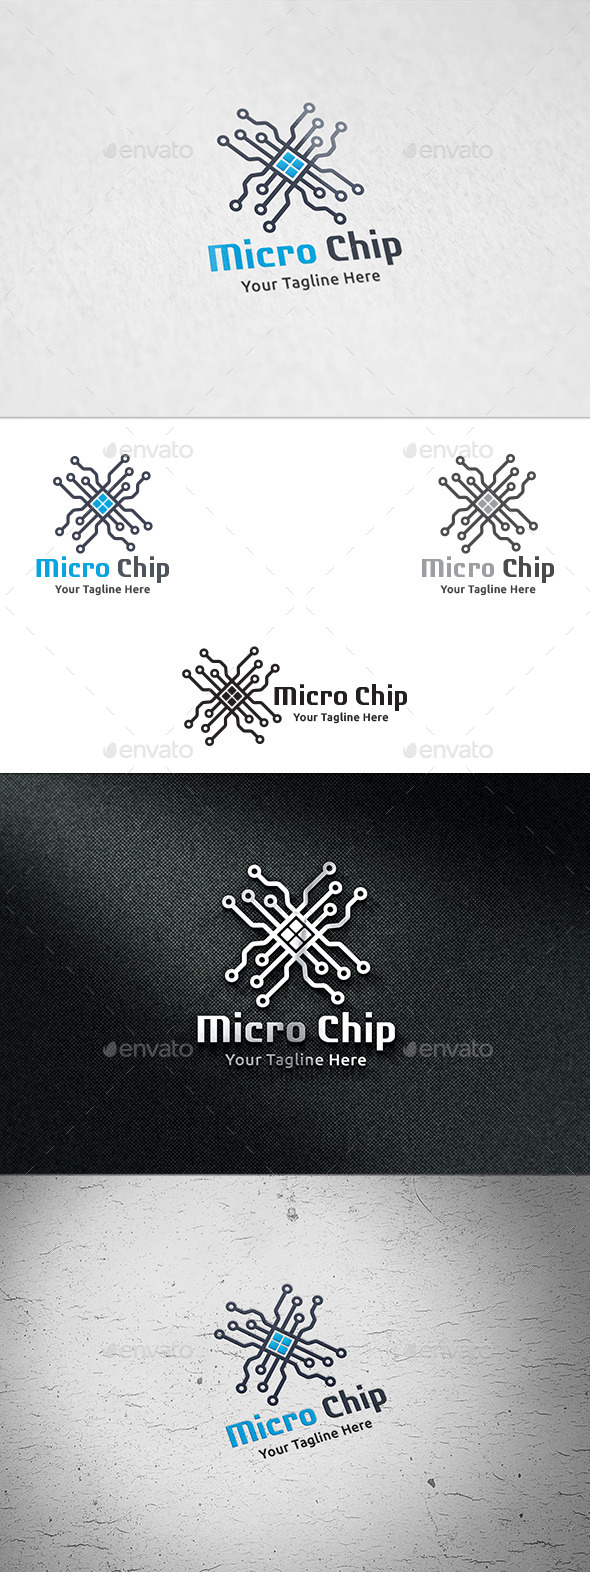 Micro Chip - Logo Template - Vector Abstract